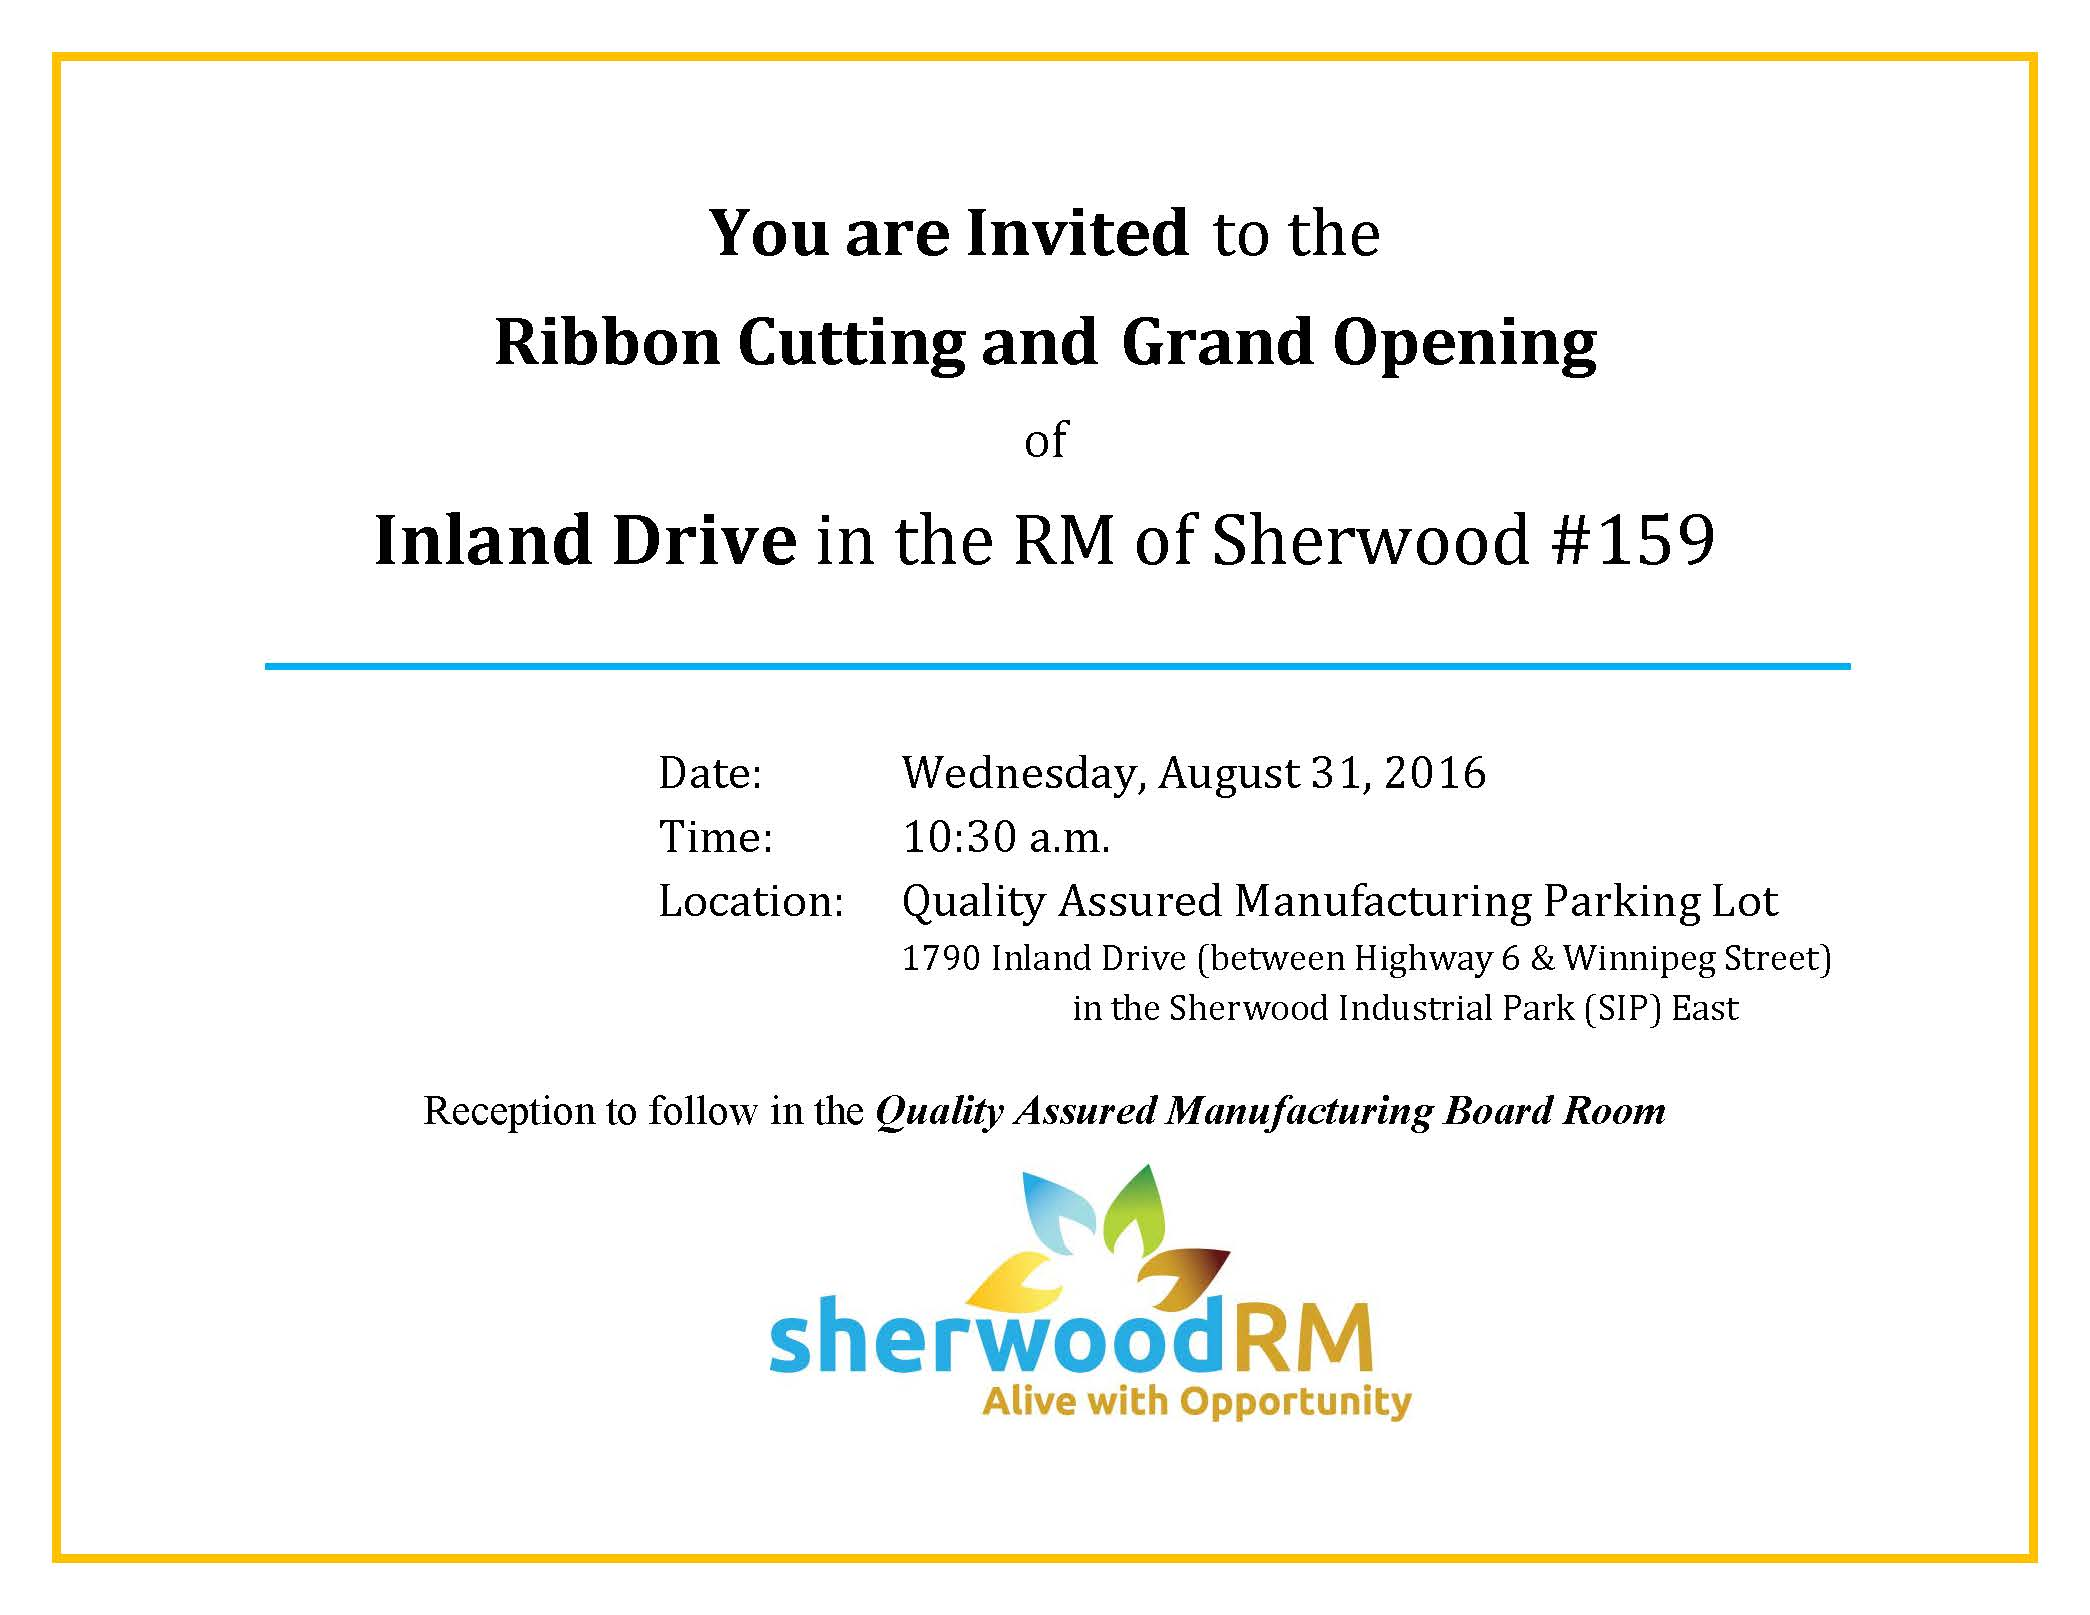 ribbon cutting and grand opening of inland drive invitation rm of